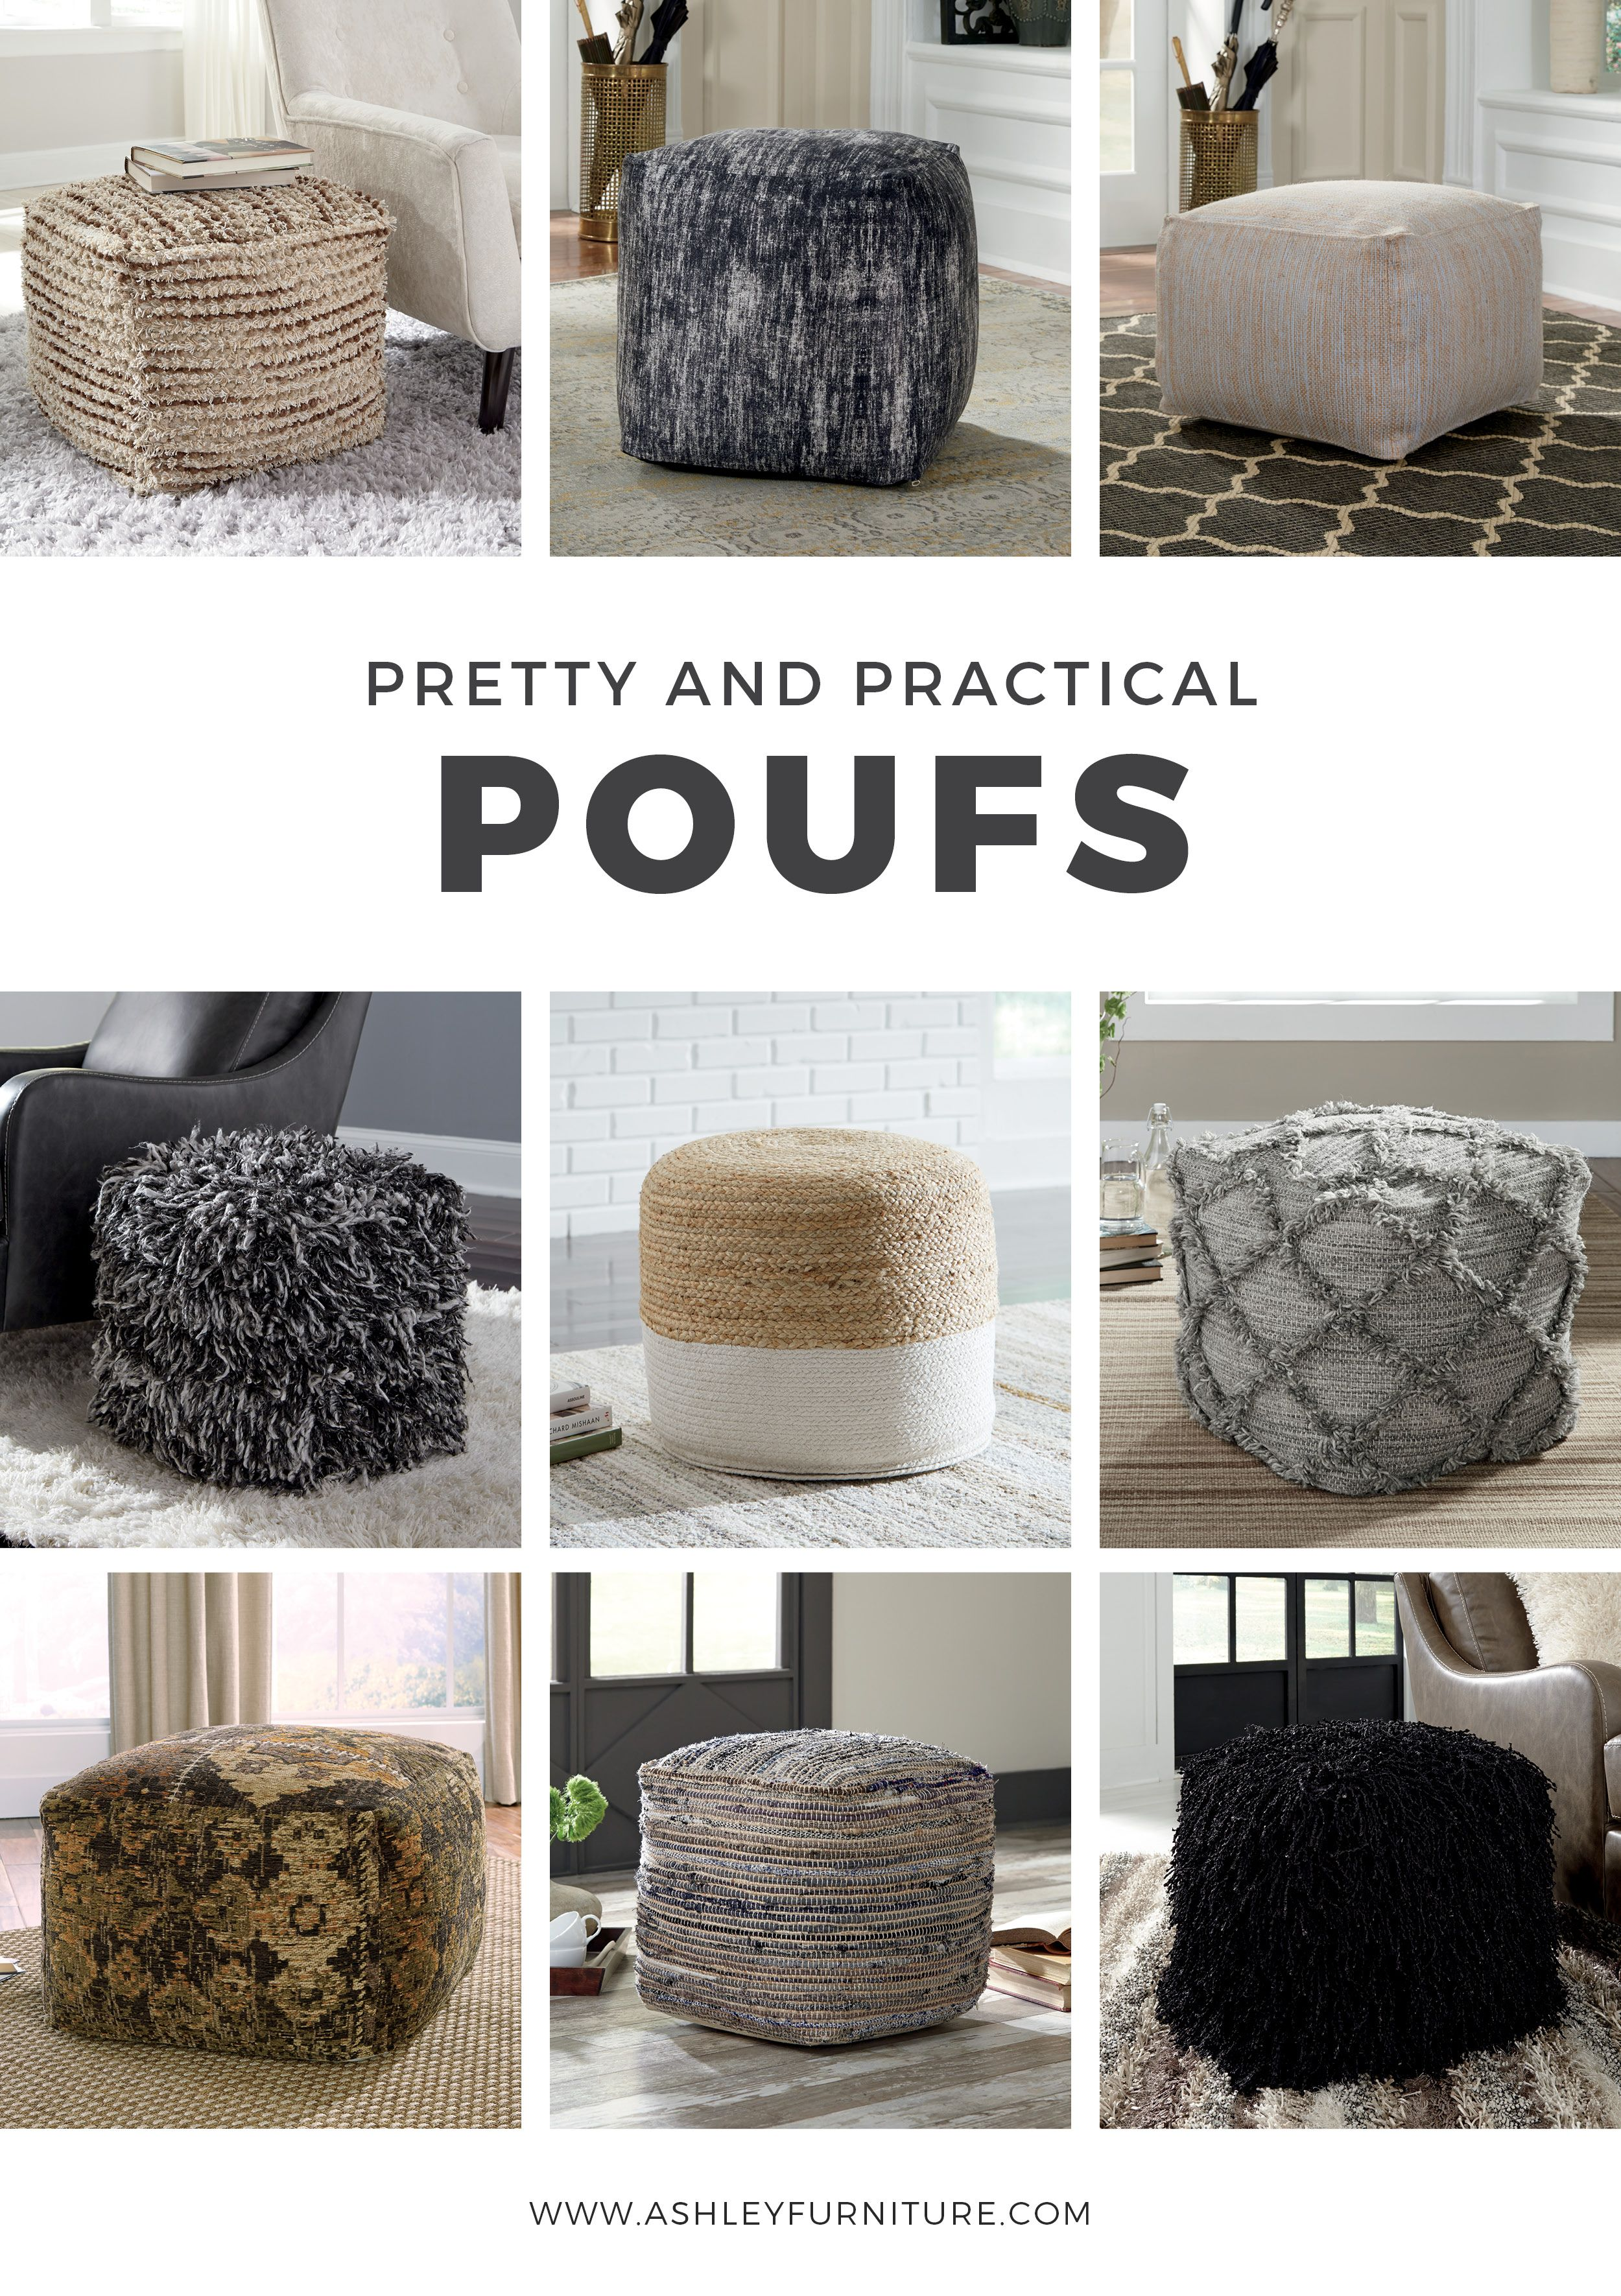 Pretty And Practical Poufs By Ashley Furniture Homedecor Pouf